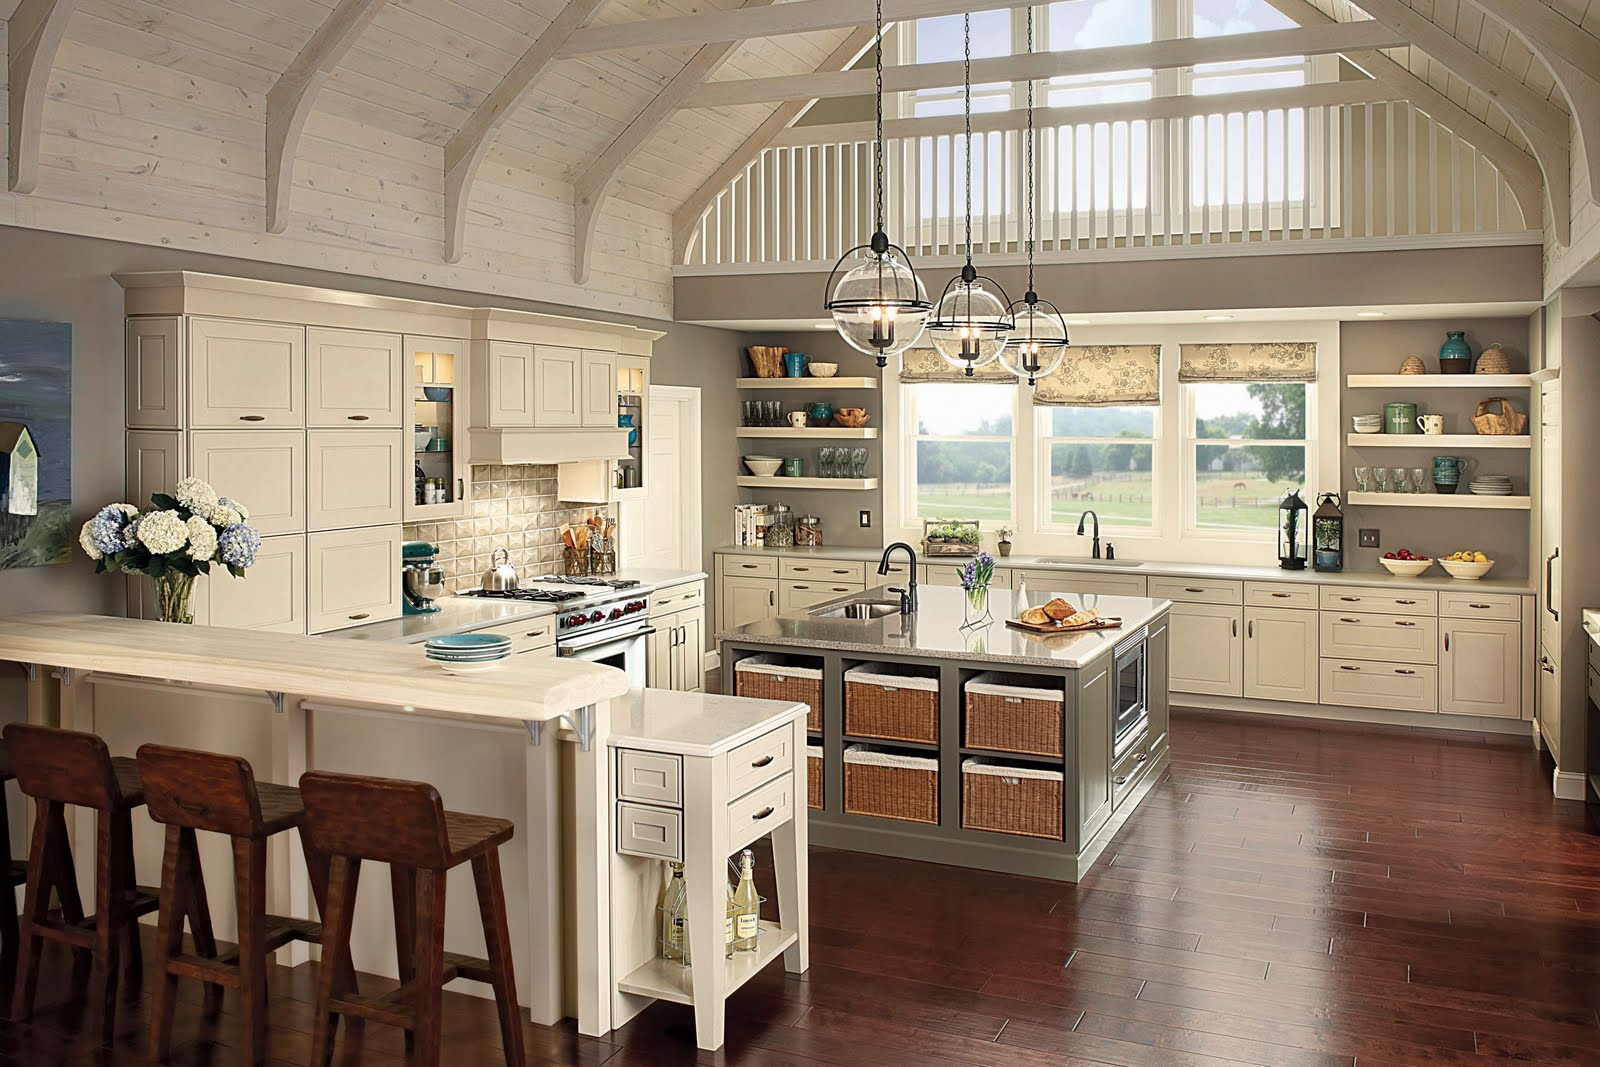 kitchen table bakers kitchen table bakers Kitchen table bakers Photo 10